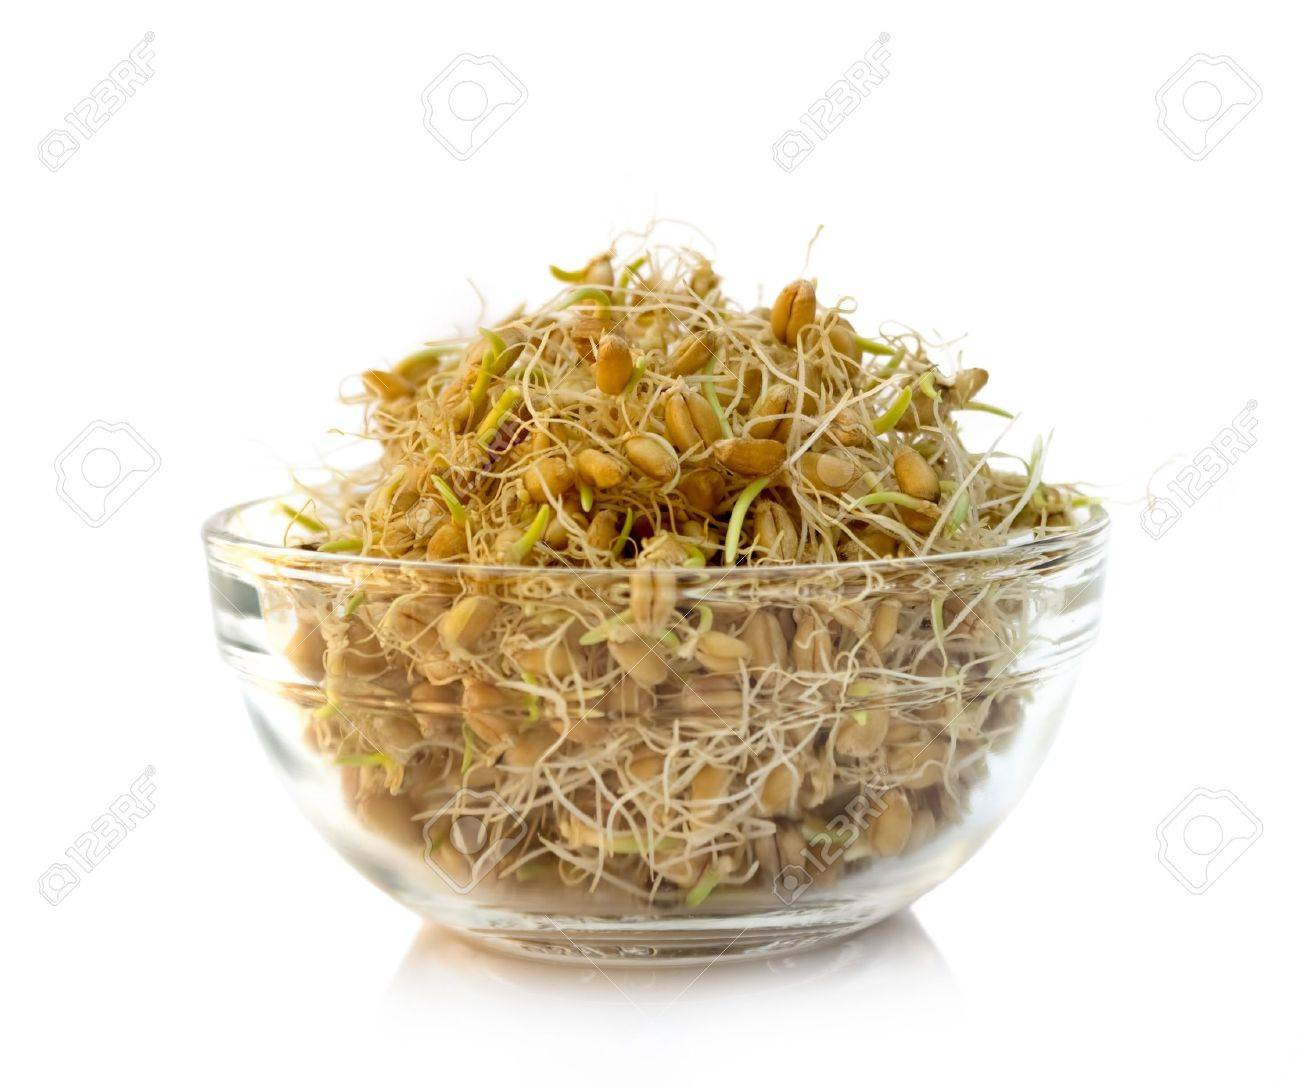 Wheat germs in bowl, ready for eat Standard-Bild - 20956194